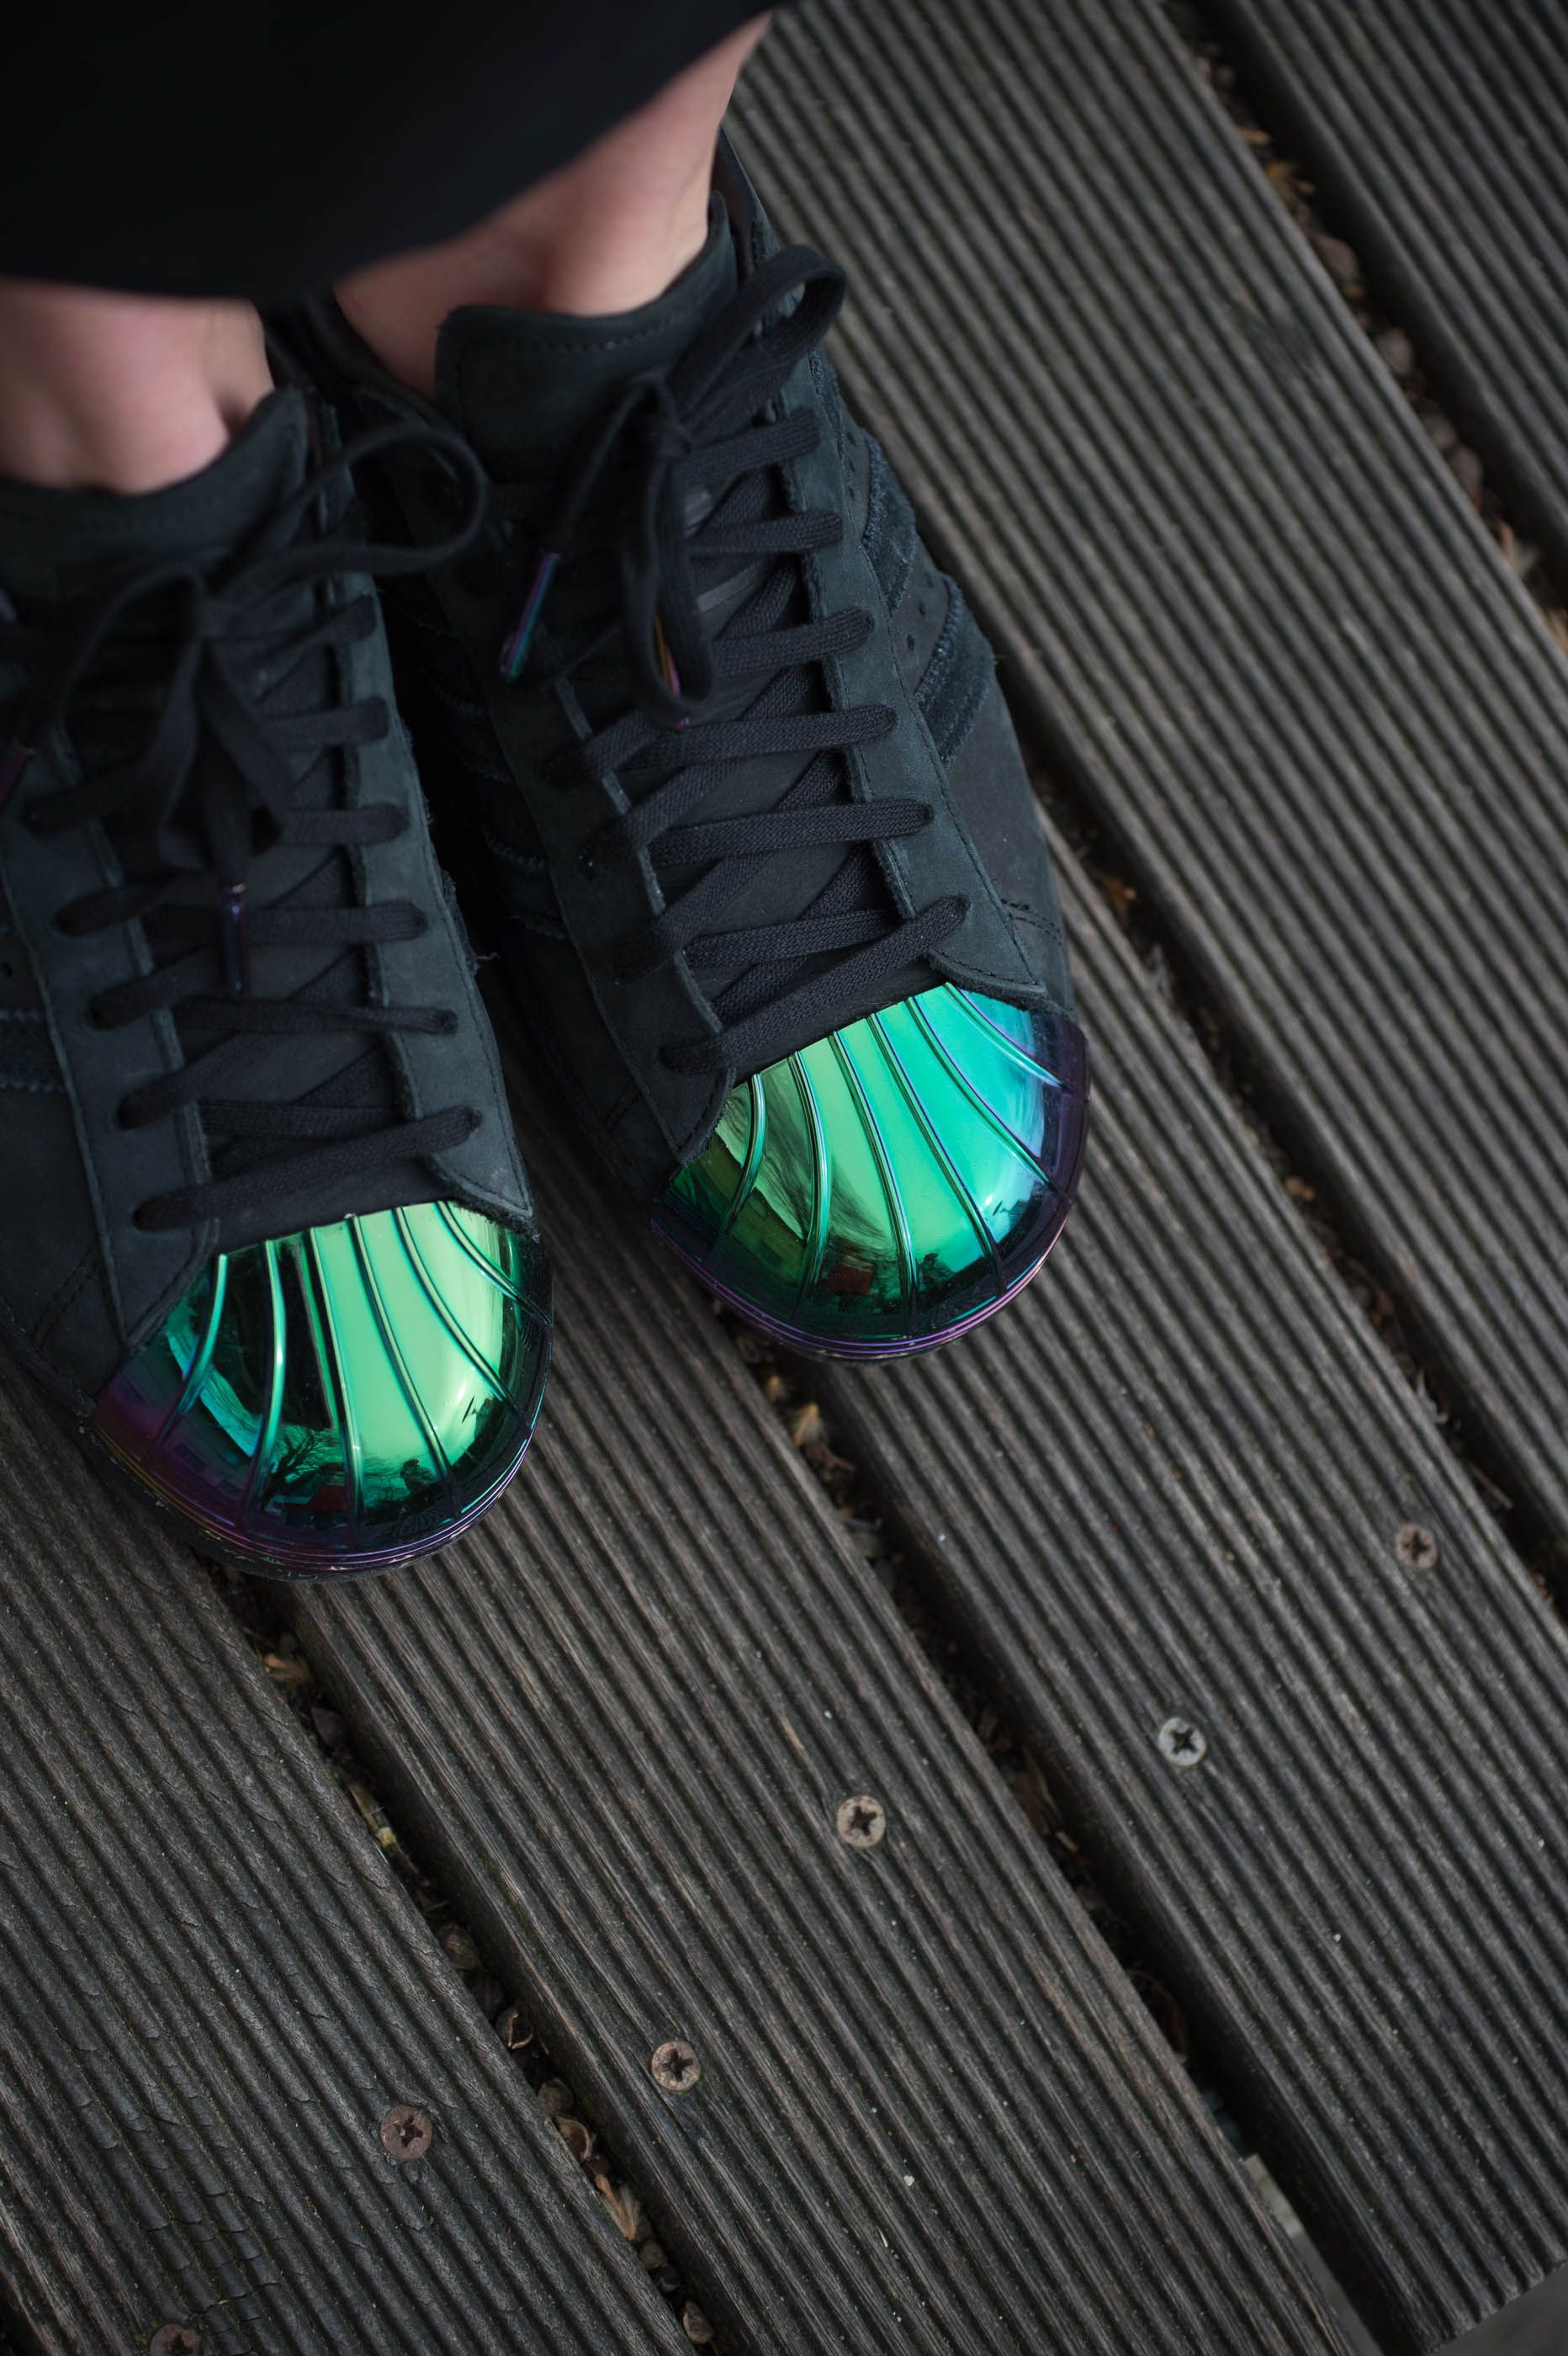 Details about New Adidas Superstar 80s Metal Toe S76710 Women's Core Black Trainers Sneakers